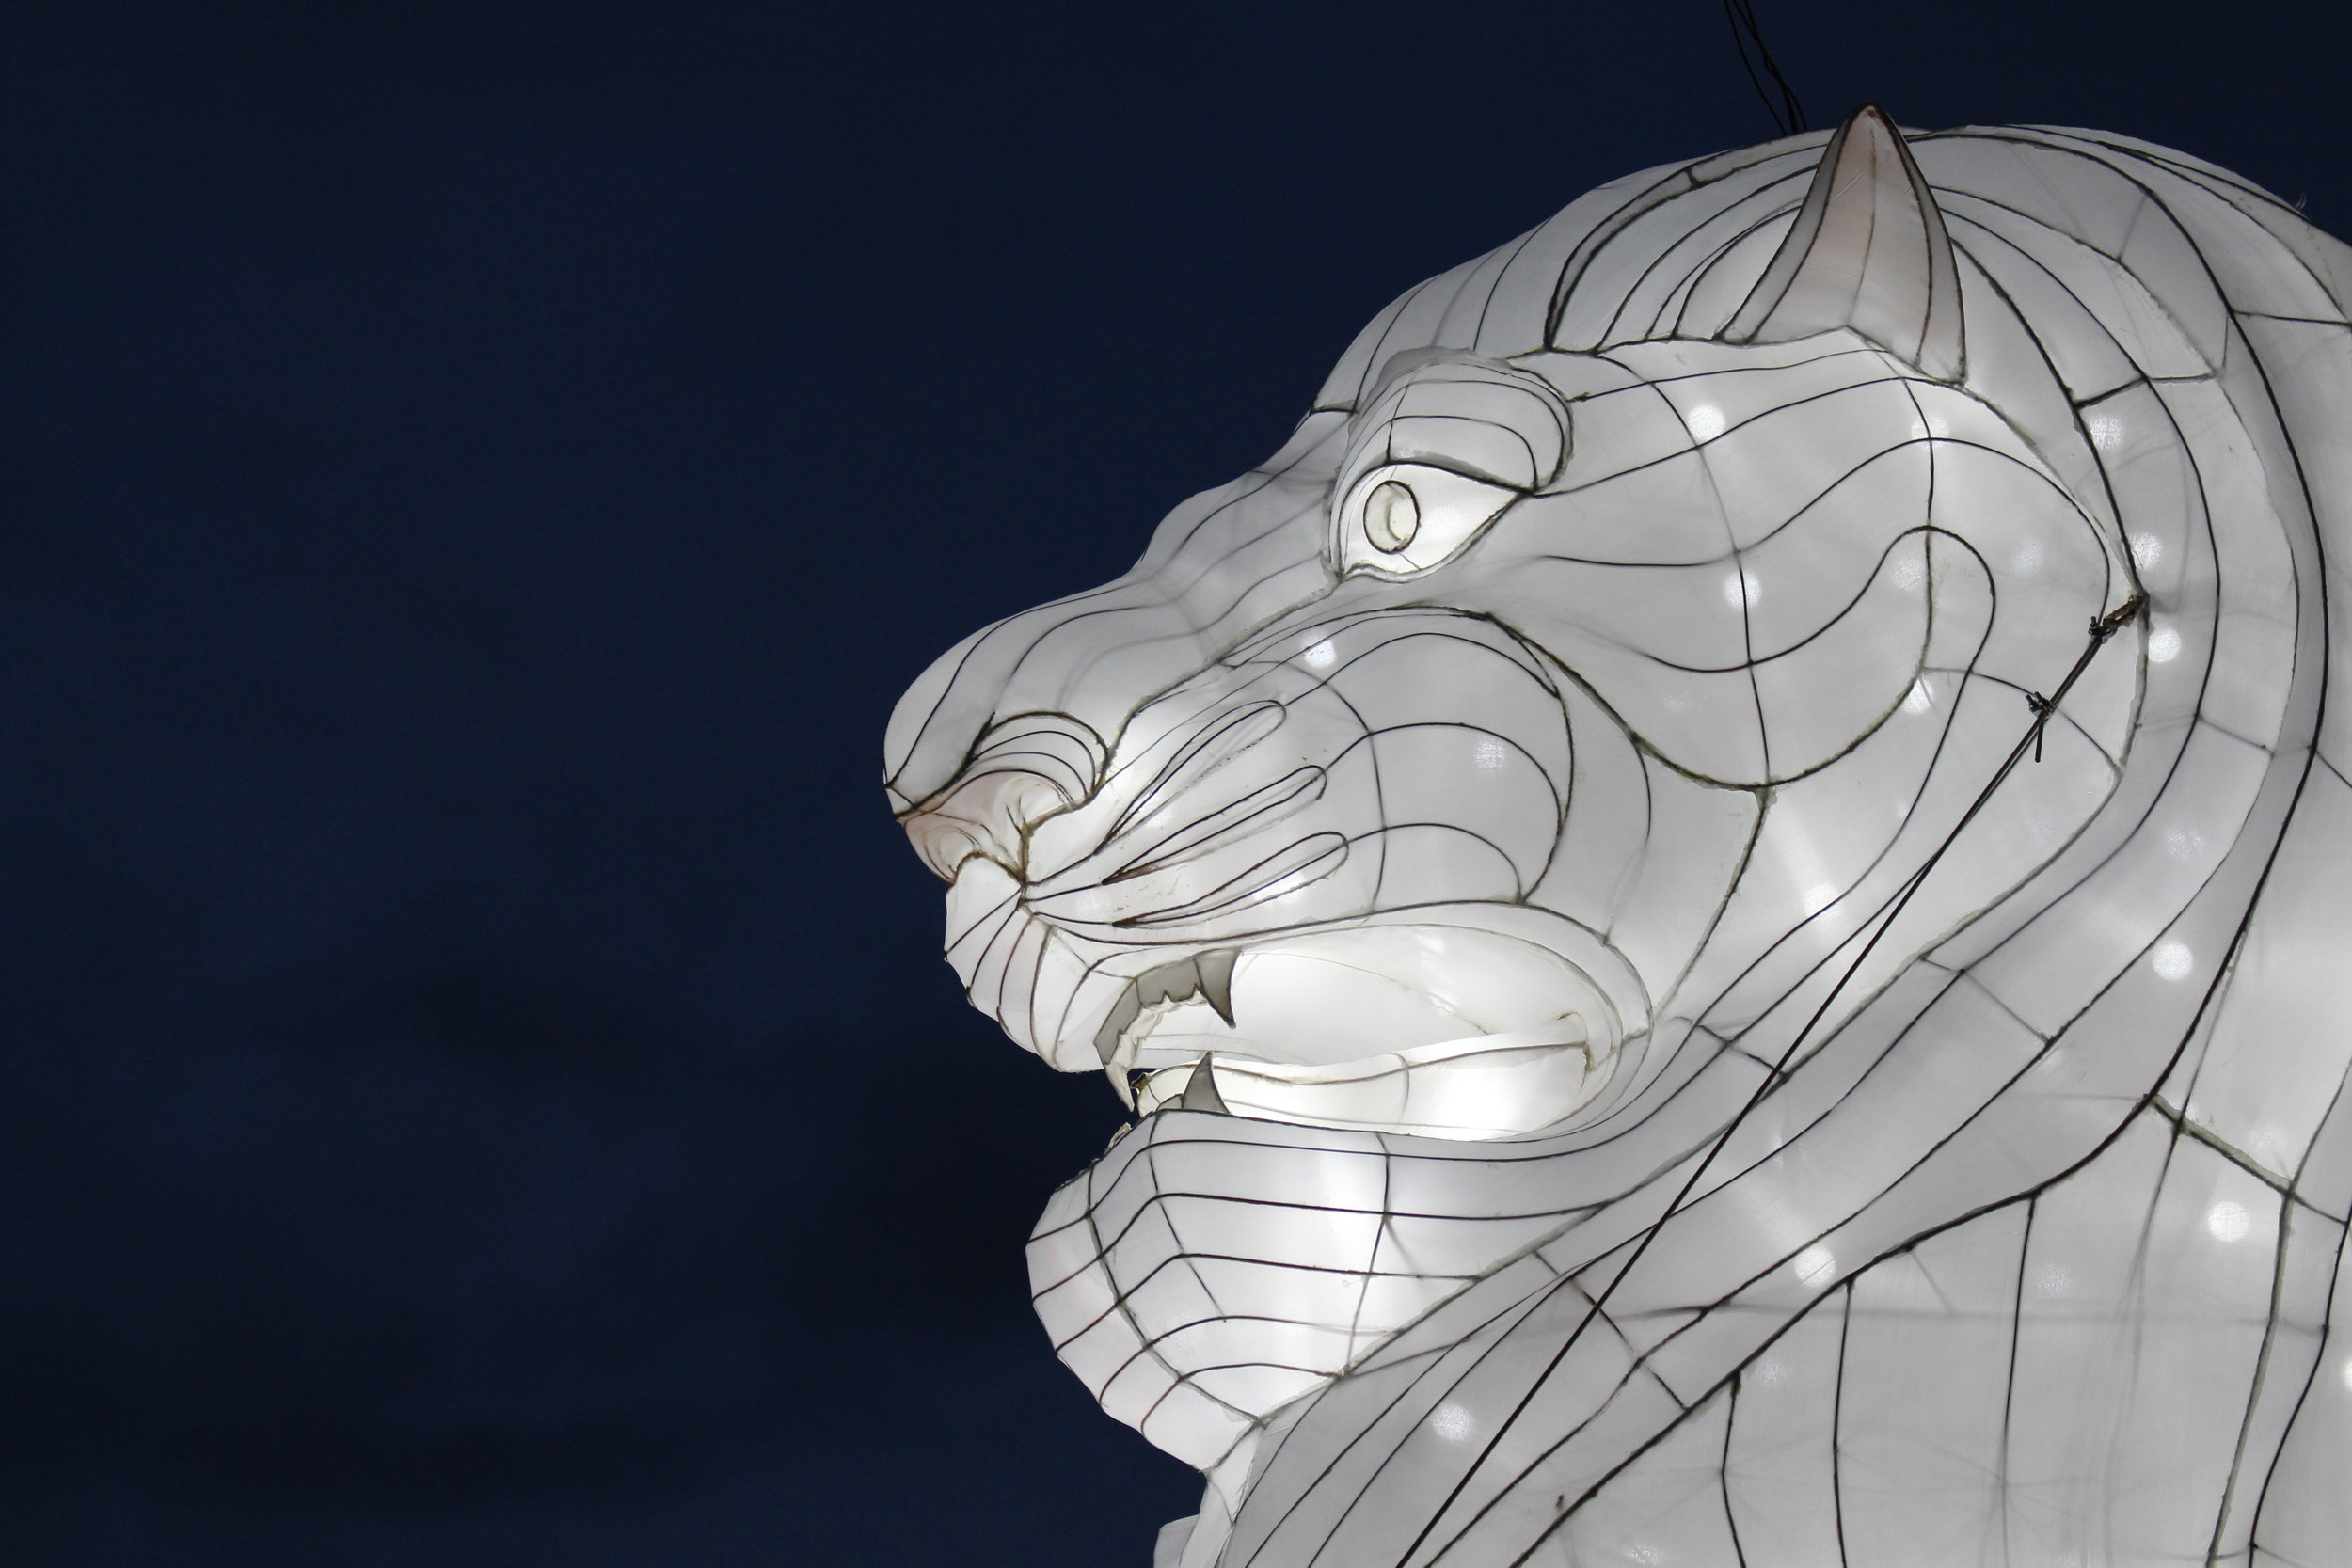 This towering Lion lantern is a recreation of the Singapore Merlion which is an iconic statue in Singapore.